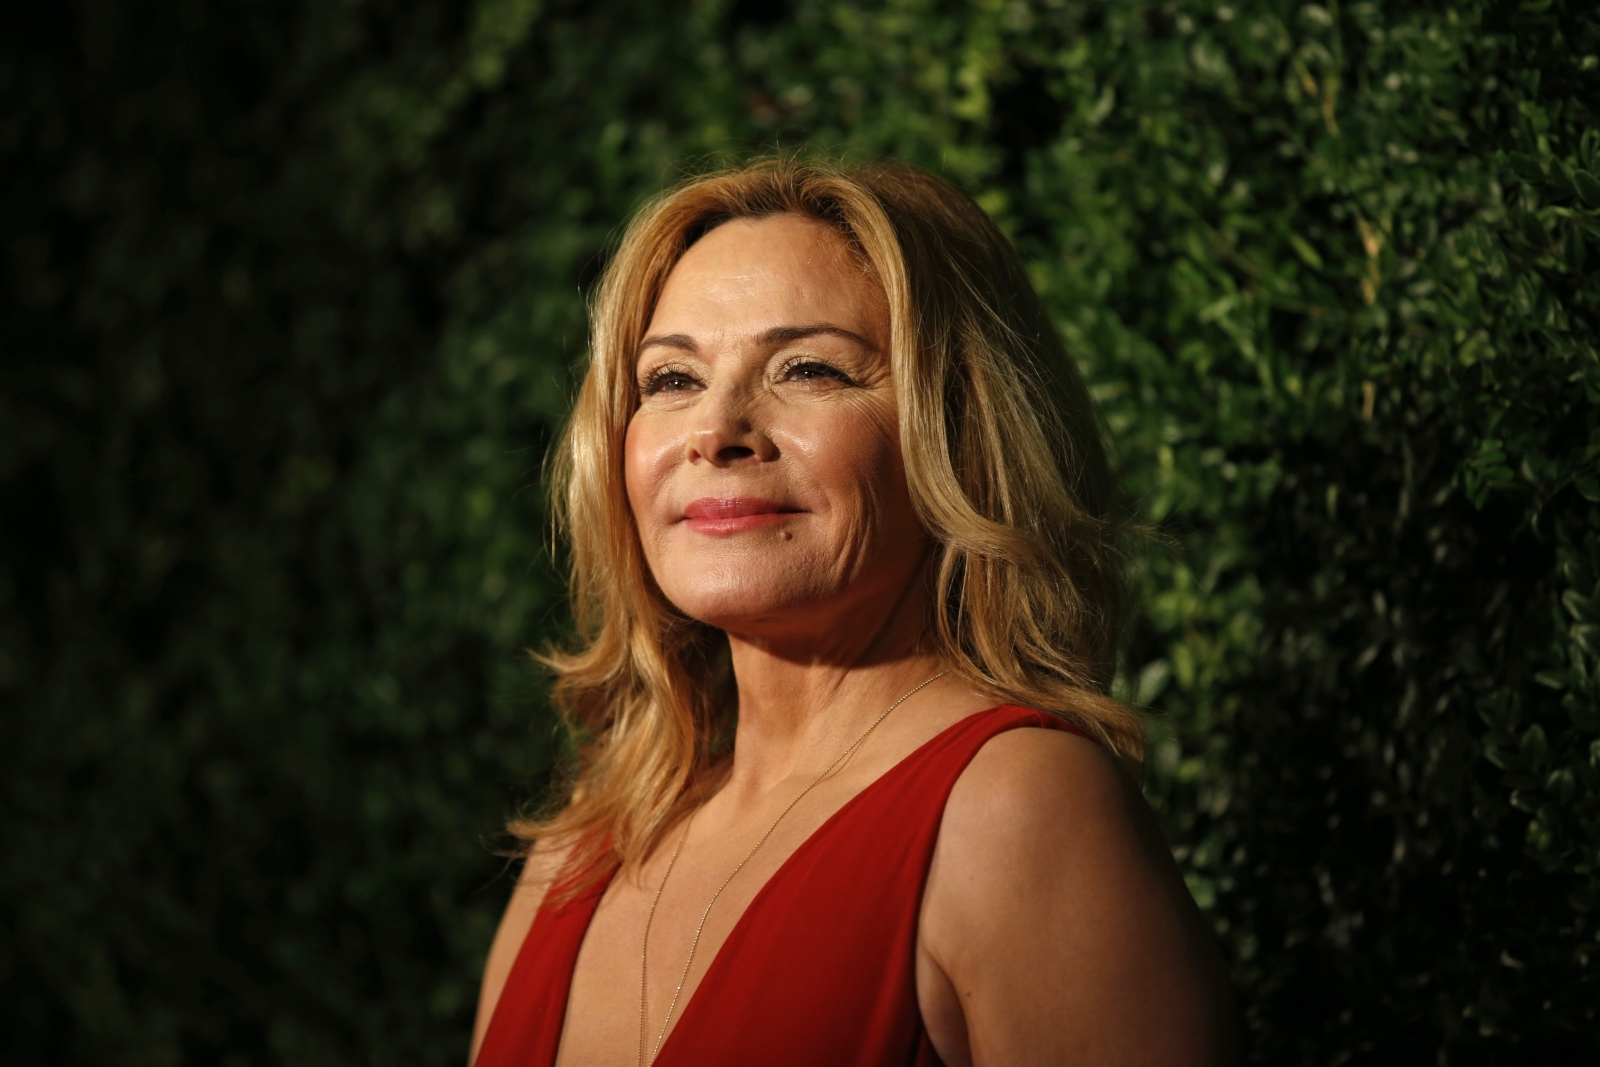 'I've 'never been friends' with 'Sex and the City' castmates' - Kim Cattrall